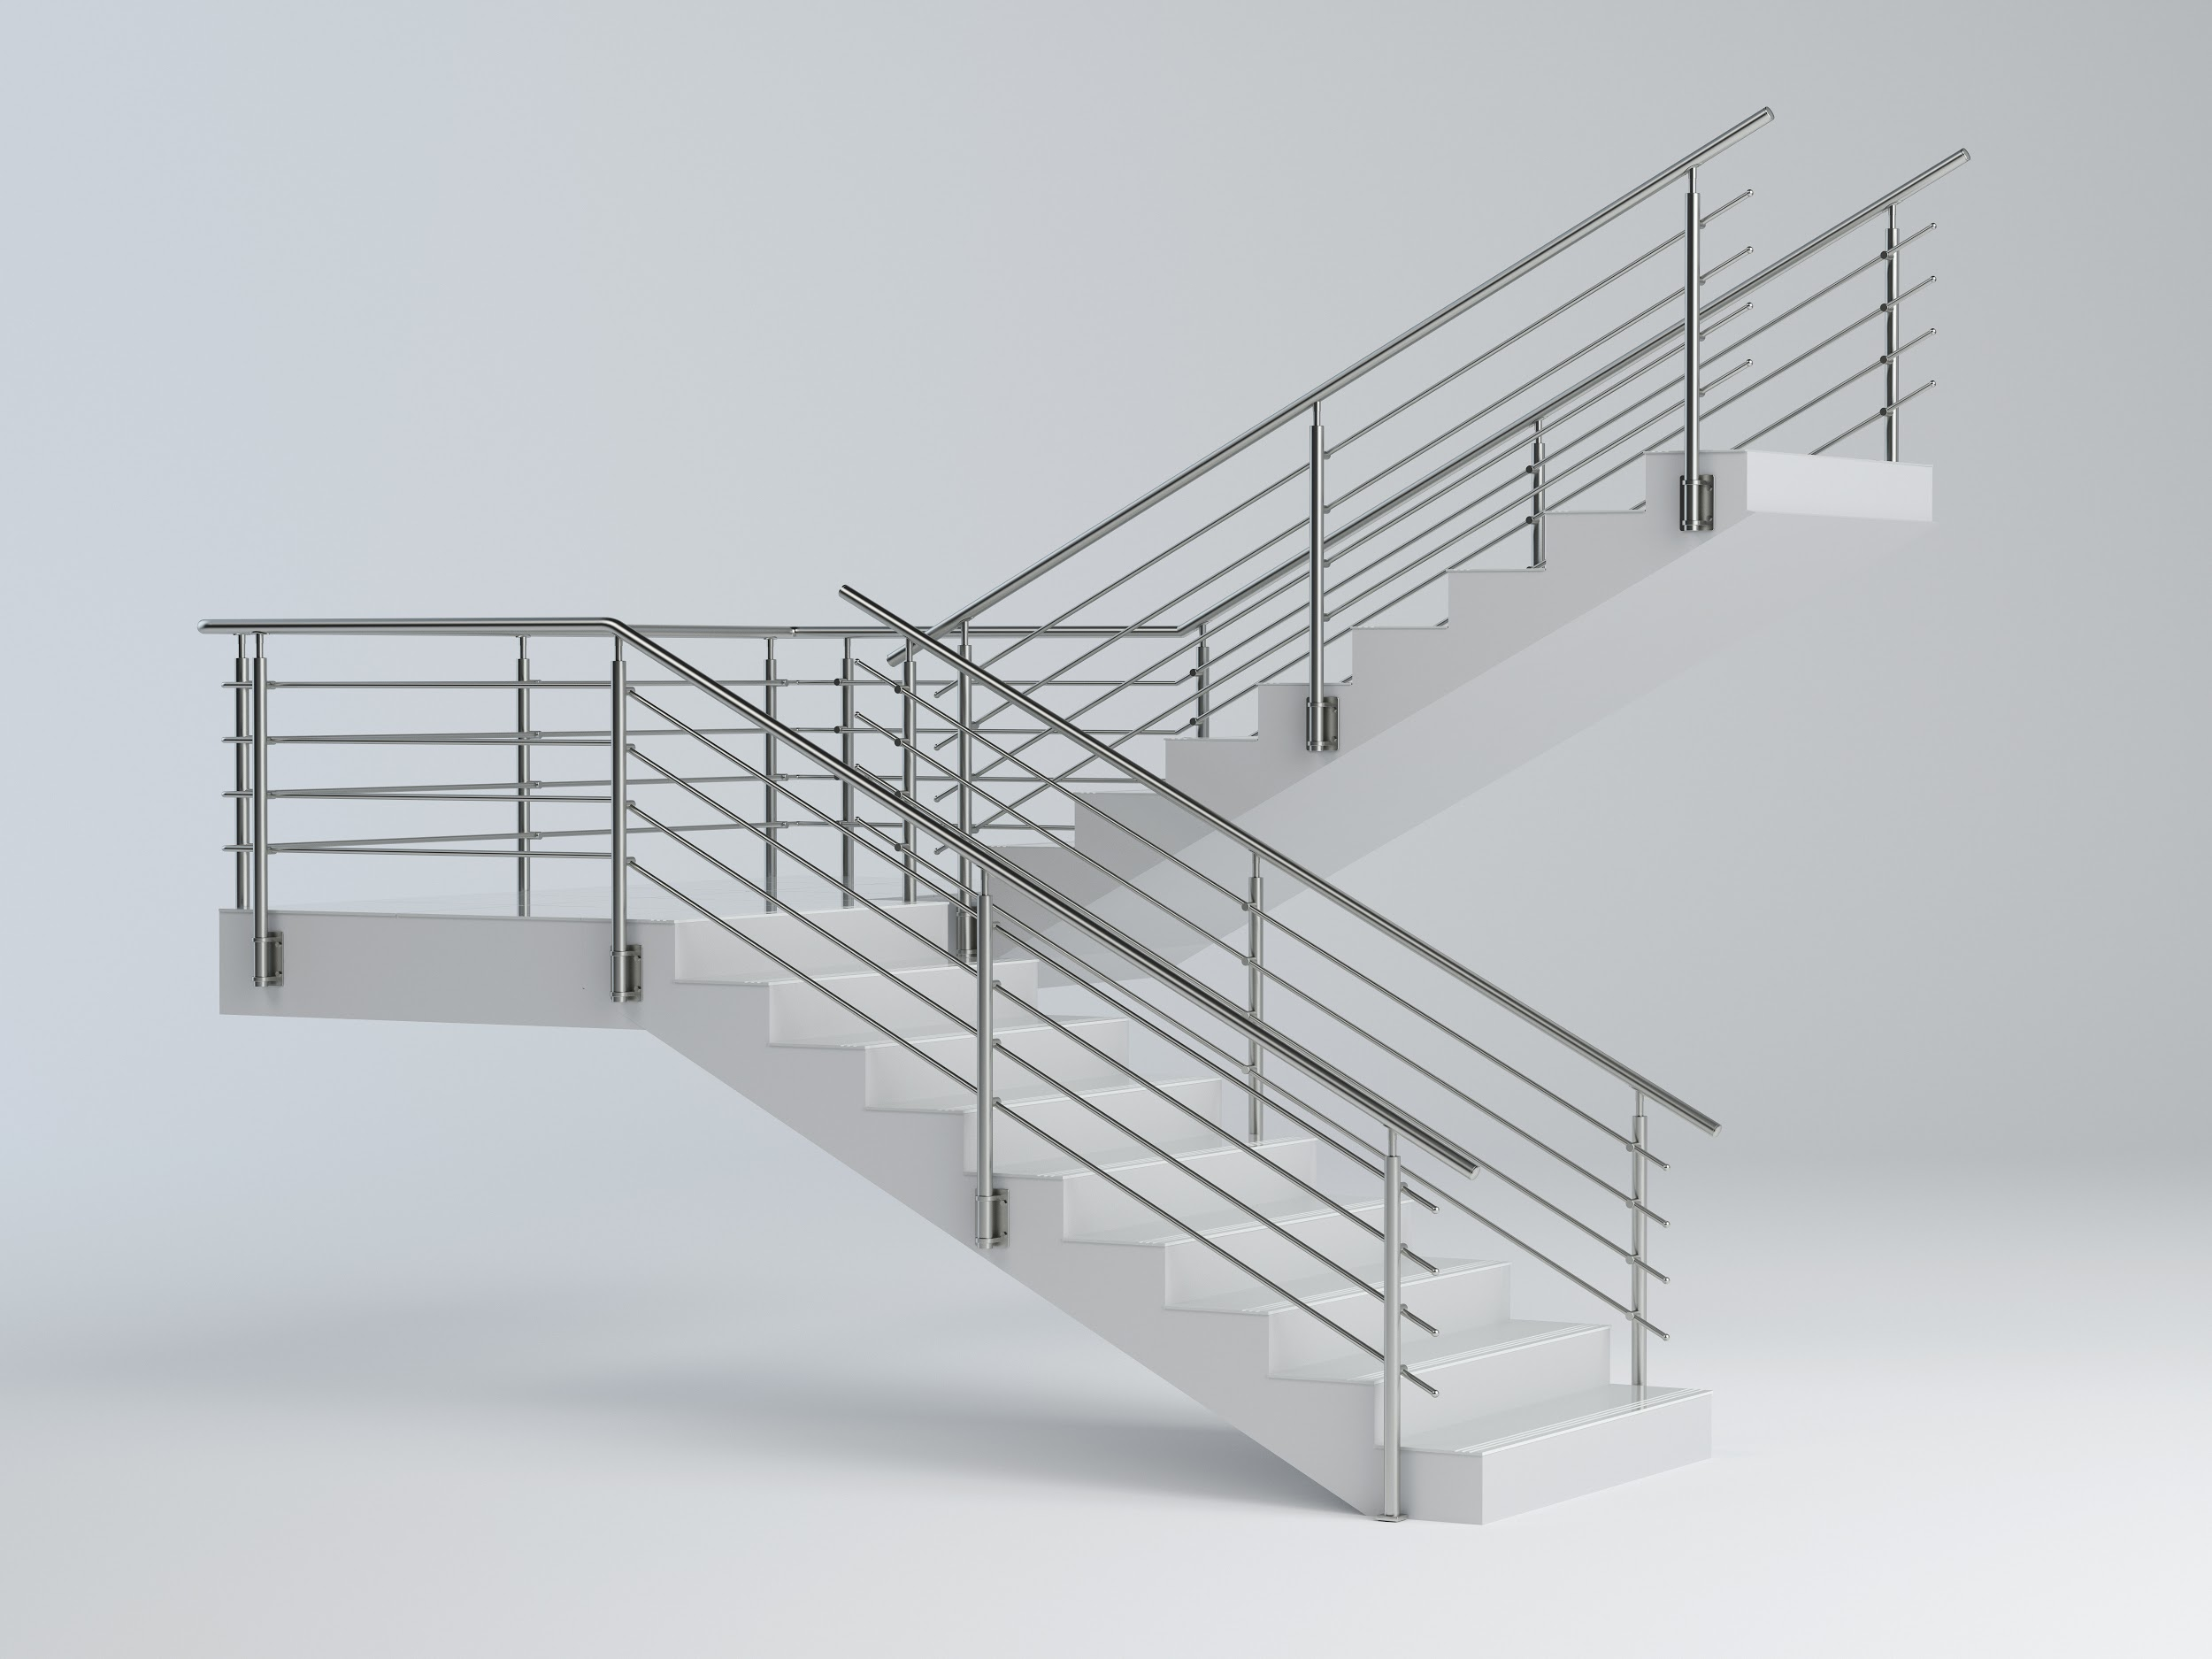 Stairs and stainless steel railing